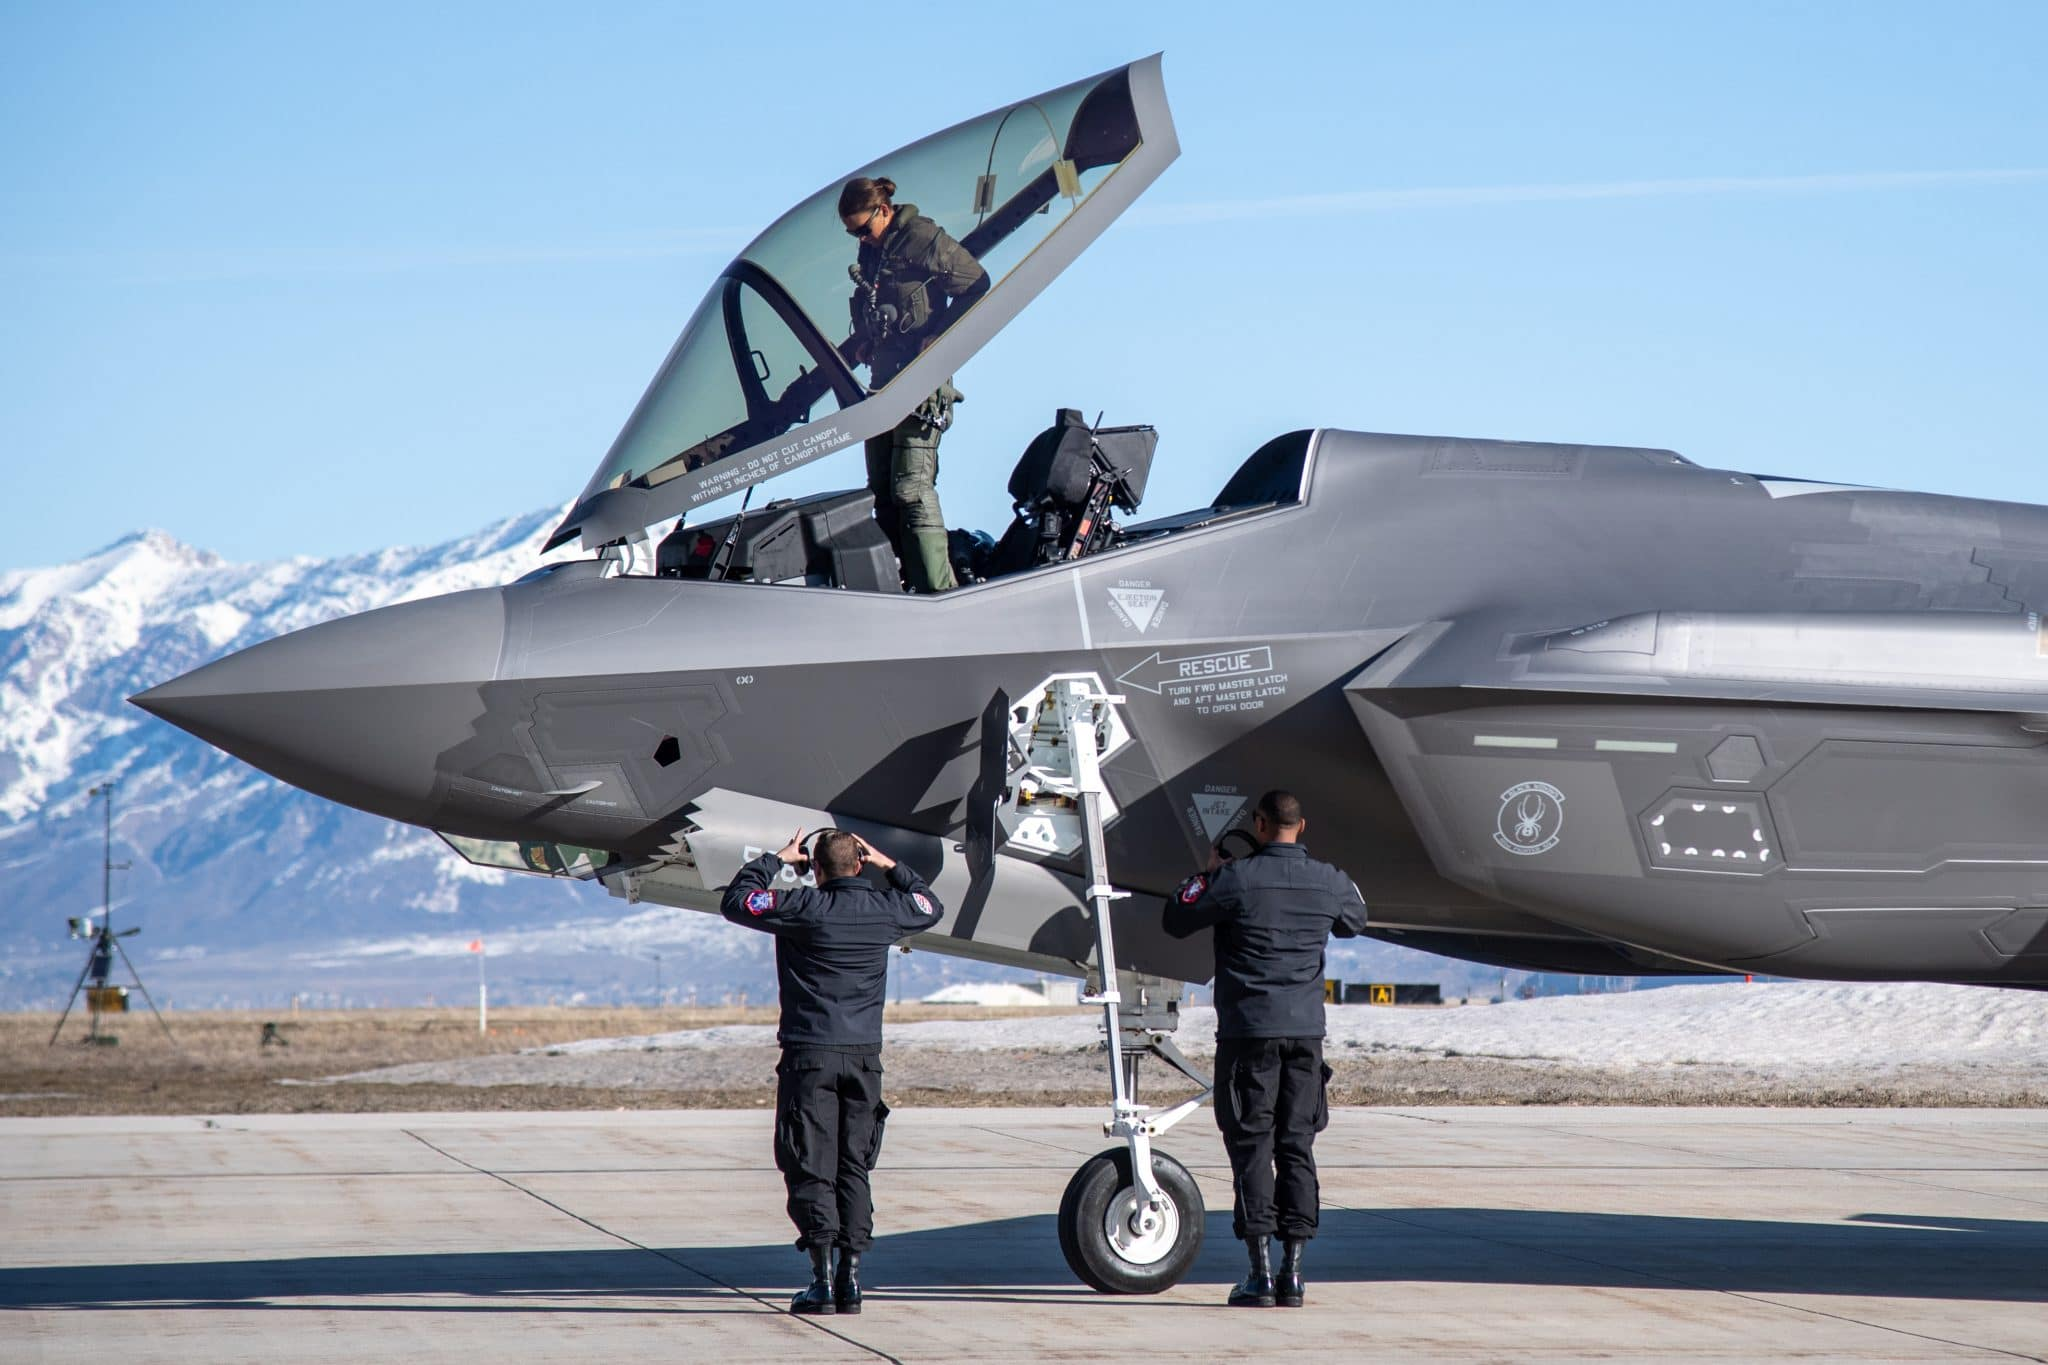 US Military News • USAF F-35A Demonstration Team • July 4th Air Shows